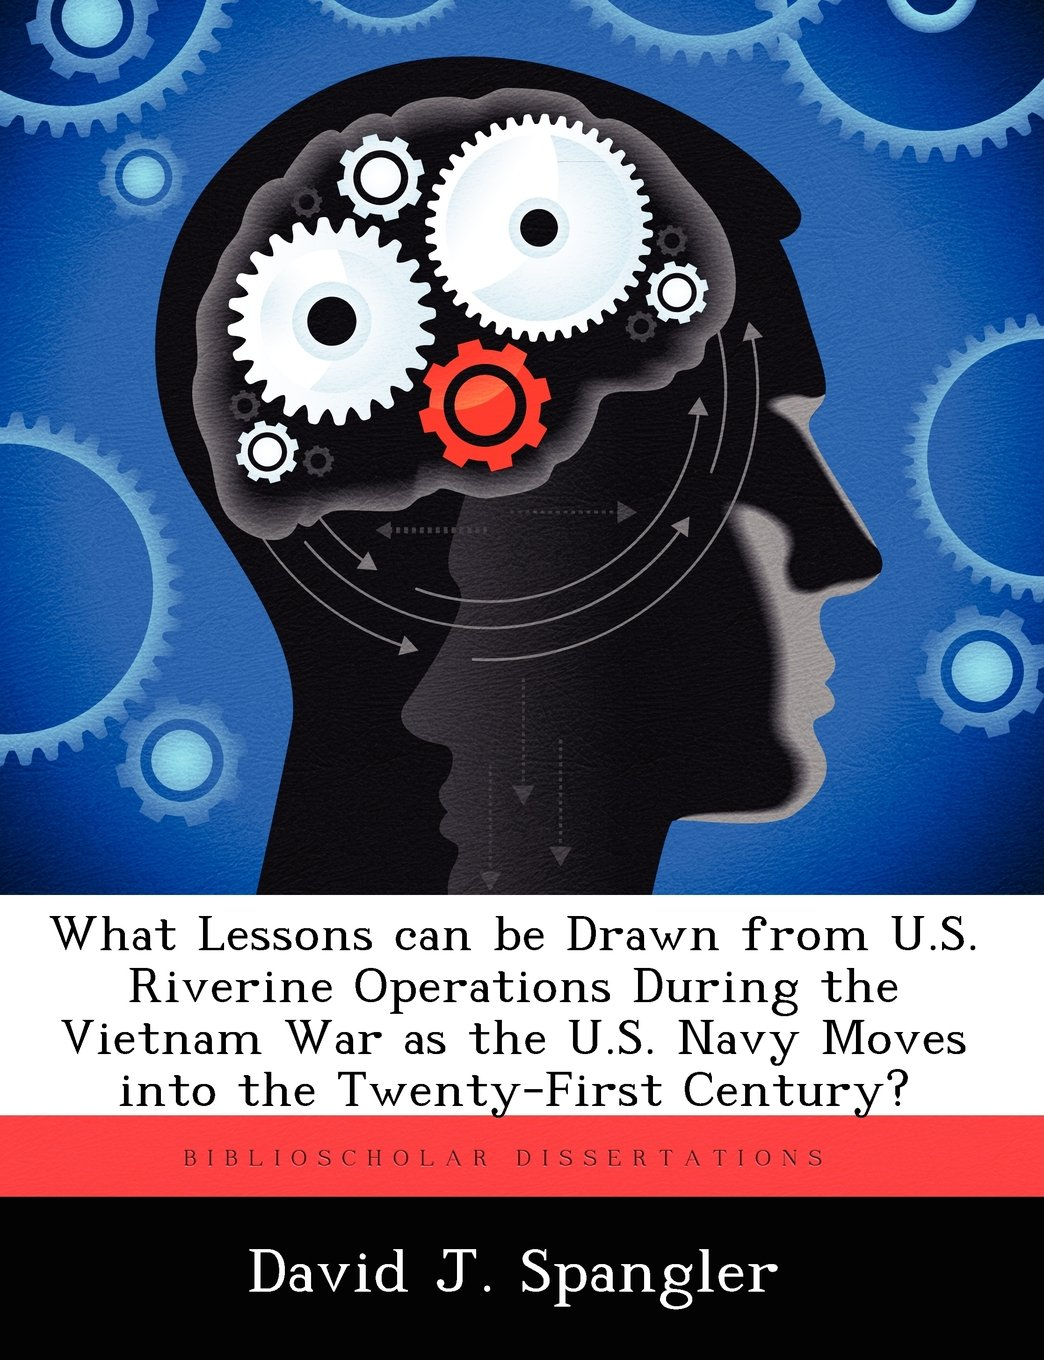 Download What Lessons can be Drawn from U.S. Riverine Operations During the Vietnam War as the U.S. Navy Moves into the Twenty-First Century? pdf epub